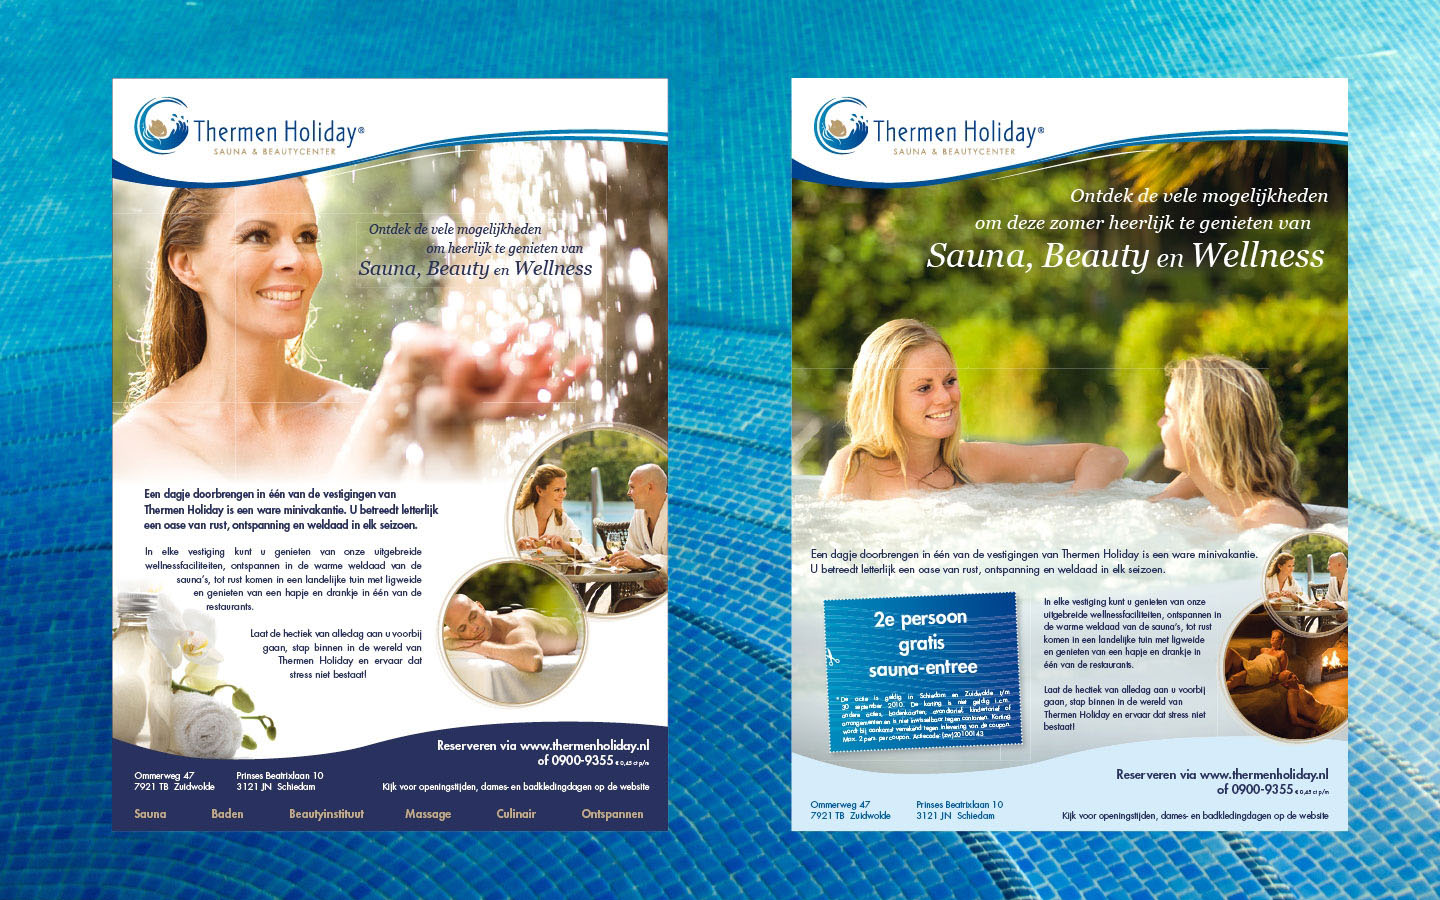 Thermen Holiday advertenties 2010